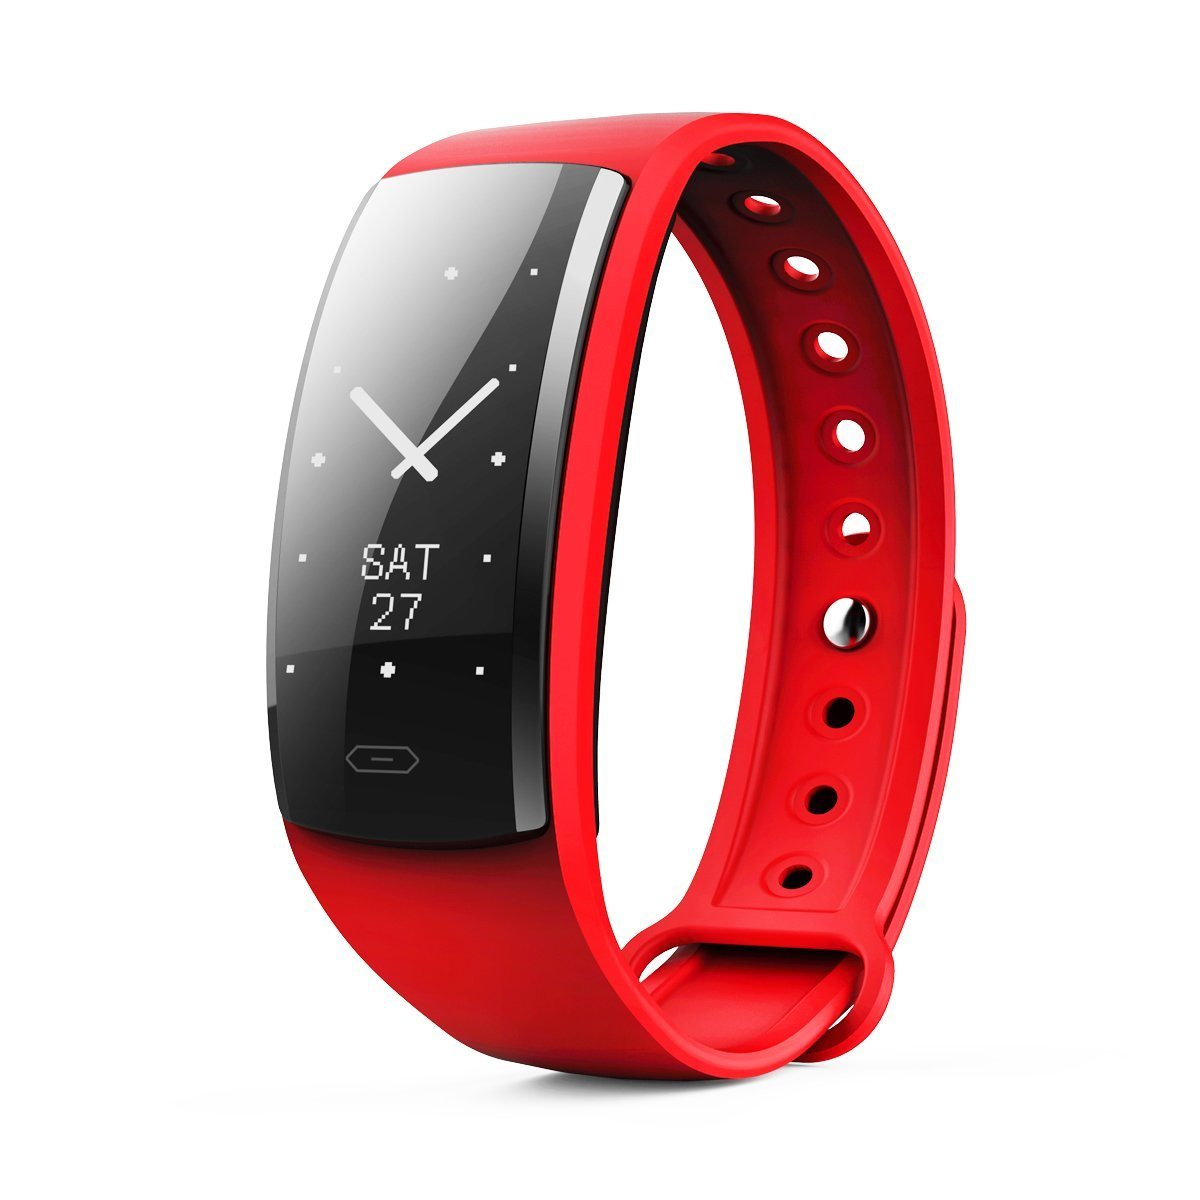 Increase your sports be fun and be healthy every time! Health Sports Fitness Tracker